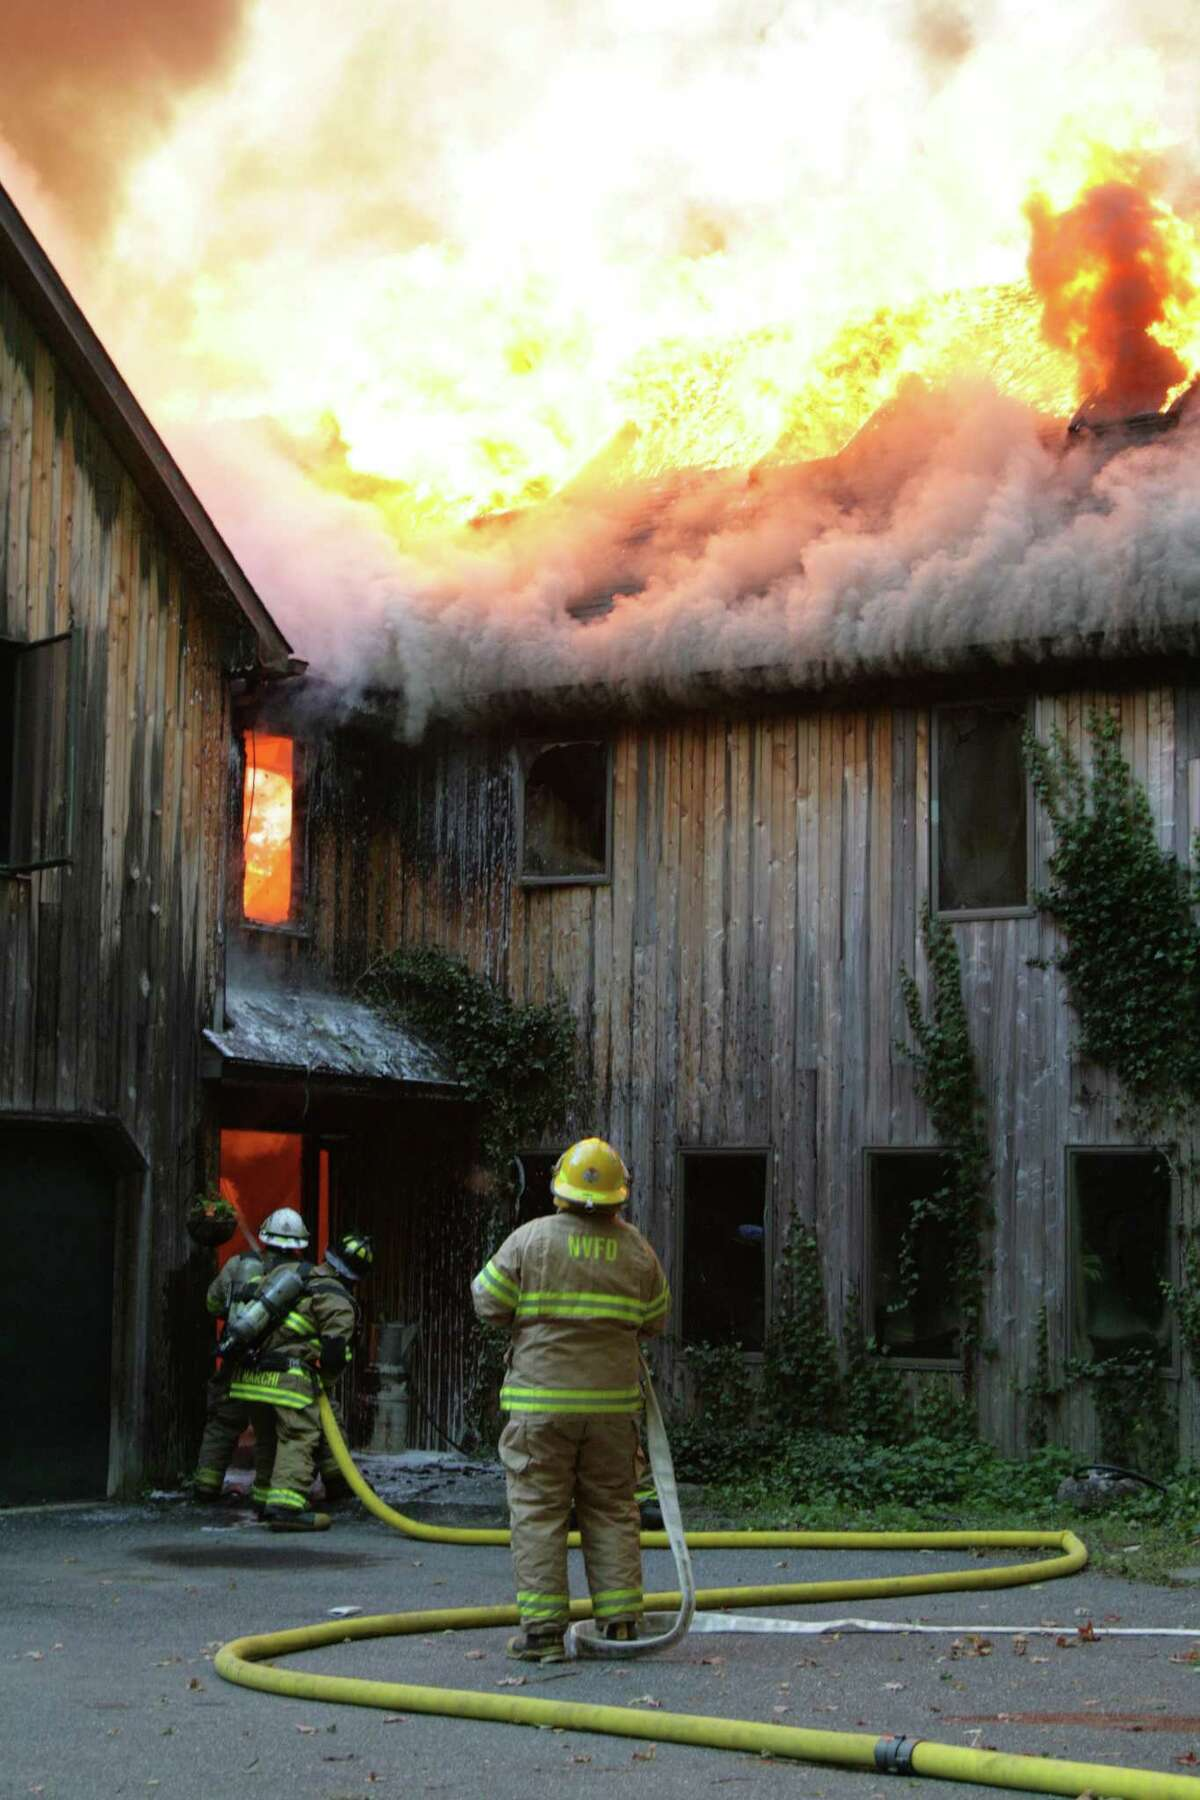 Courtesy of Jonathan Barbagallo/ Firemen respond to a structural fire in Colebrook early Monday morning.